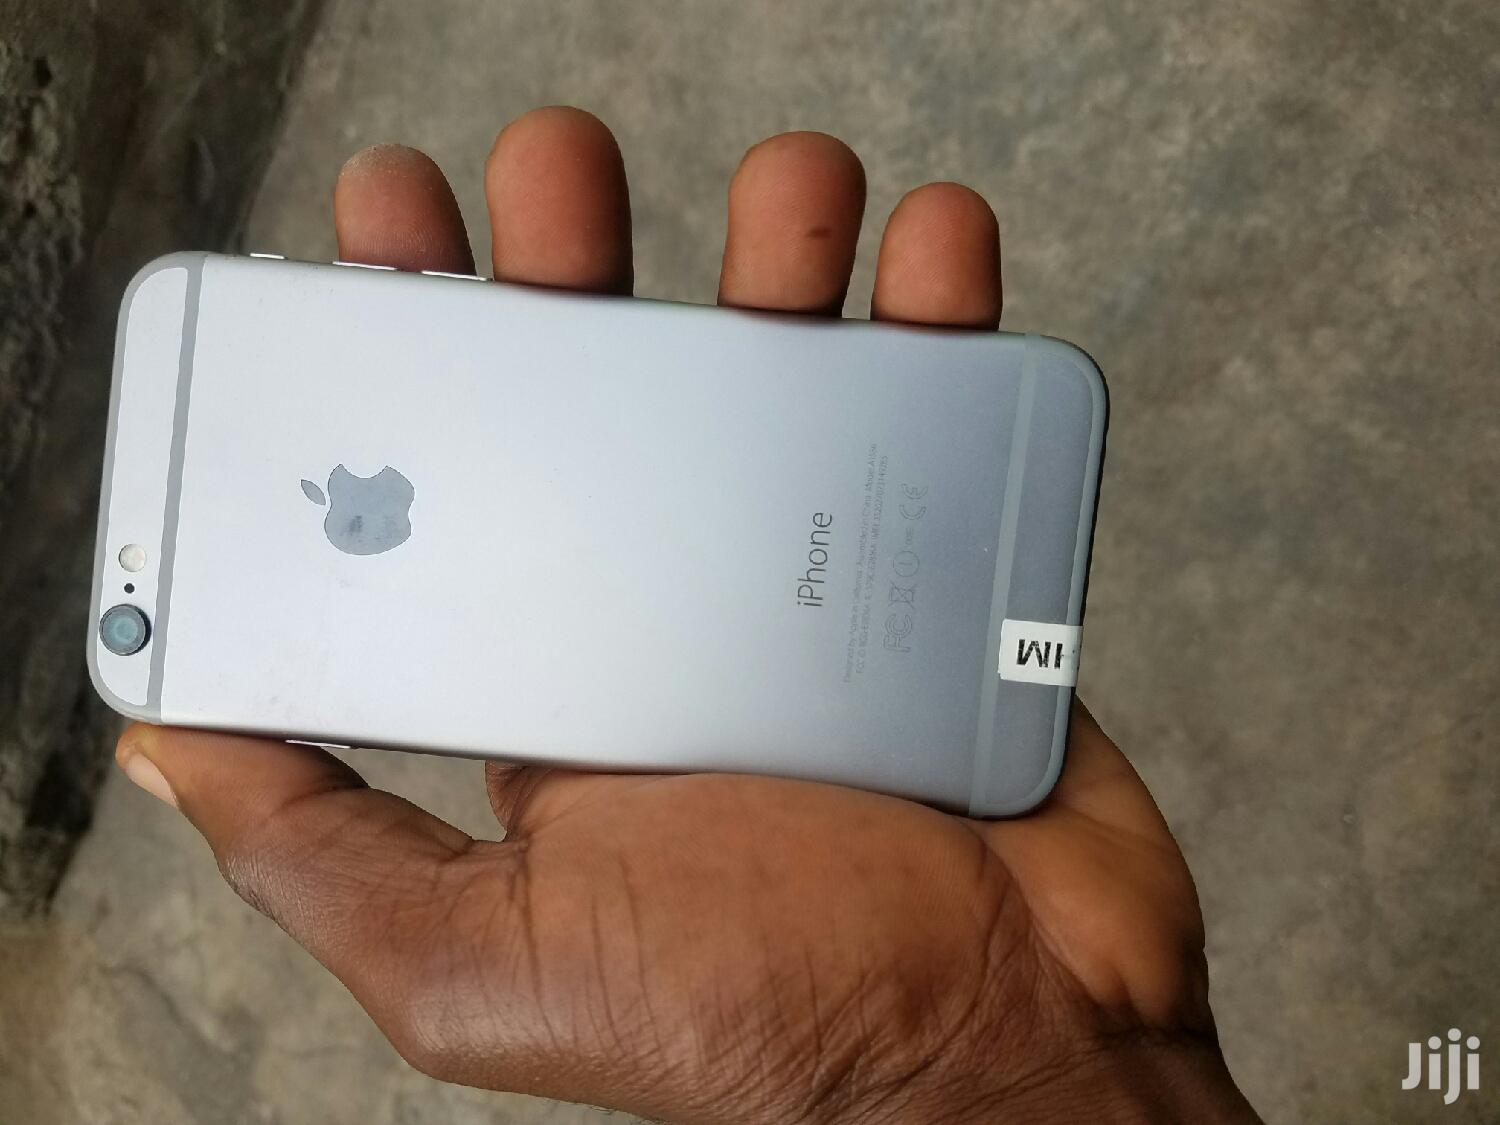 Apple iPhone 6 16 GB Gray | Mobile Phones for sale in Dansoman, Greater Accra, Ghana